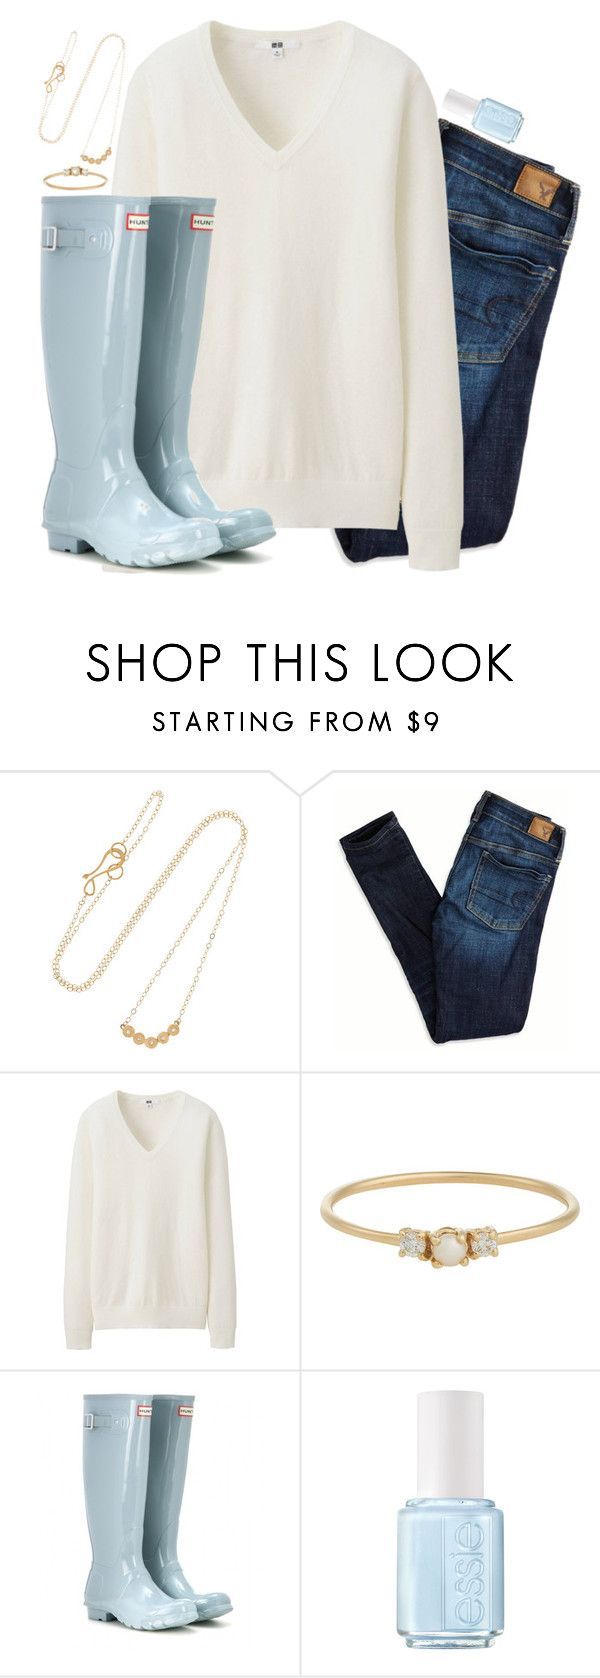 """""""I need some inspiration--comment your 2 favorite accounts"""" by preppy-classy ❤ liked on Polyvore featuring Melissa Joy Manning, American Eagle Outfitters, Uniqlo, Jennie Kwon, Hunter and Essie"""